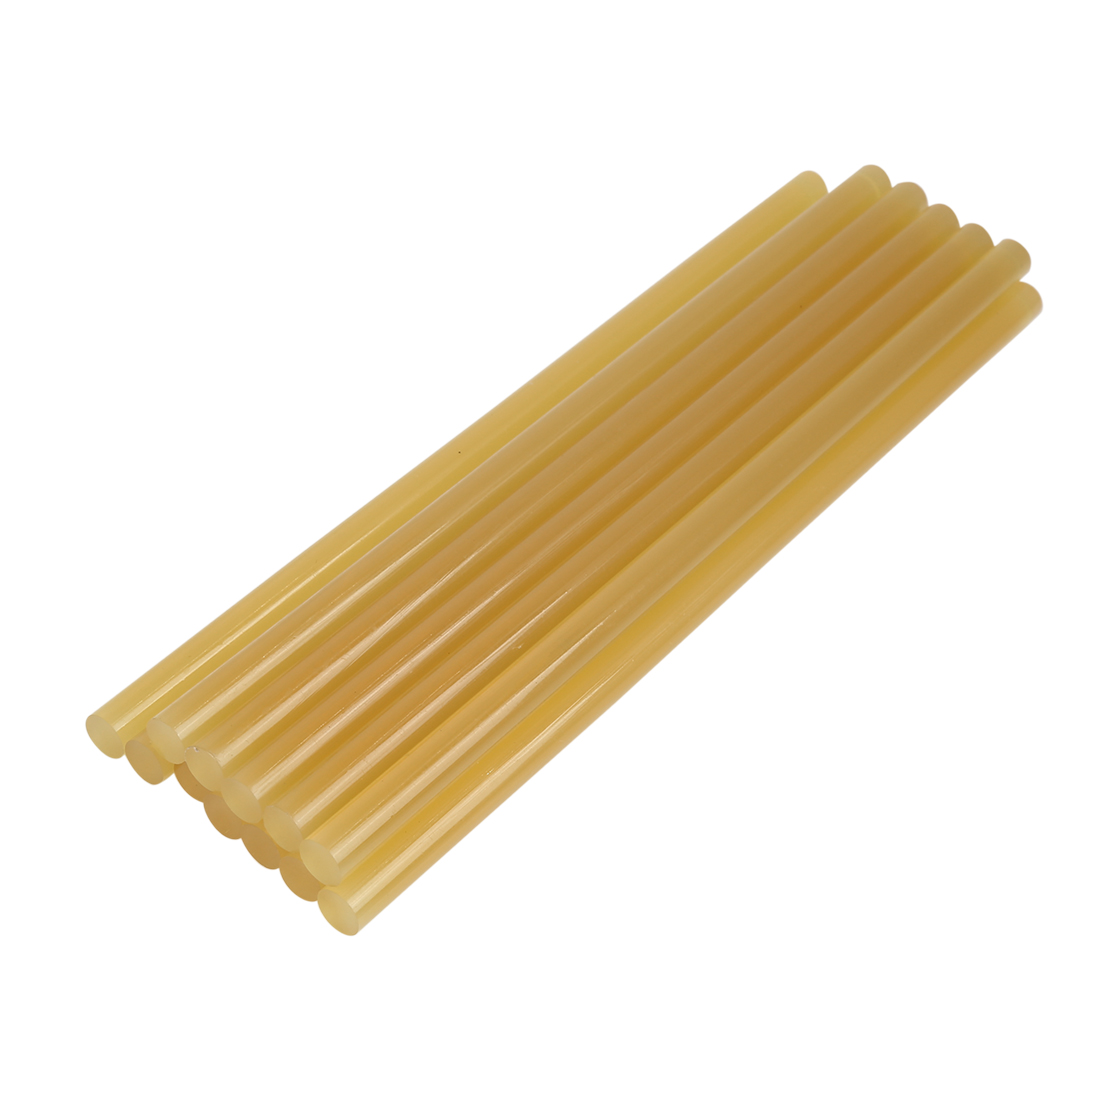 12 Pcs 11mm x 270mm Yellow Paintless Dent Repair Hot Melt Glue Sticks for Car